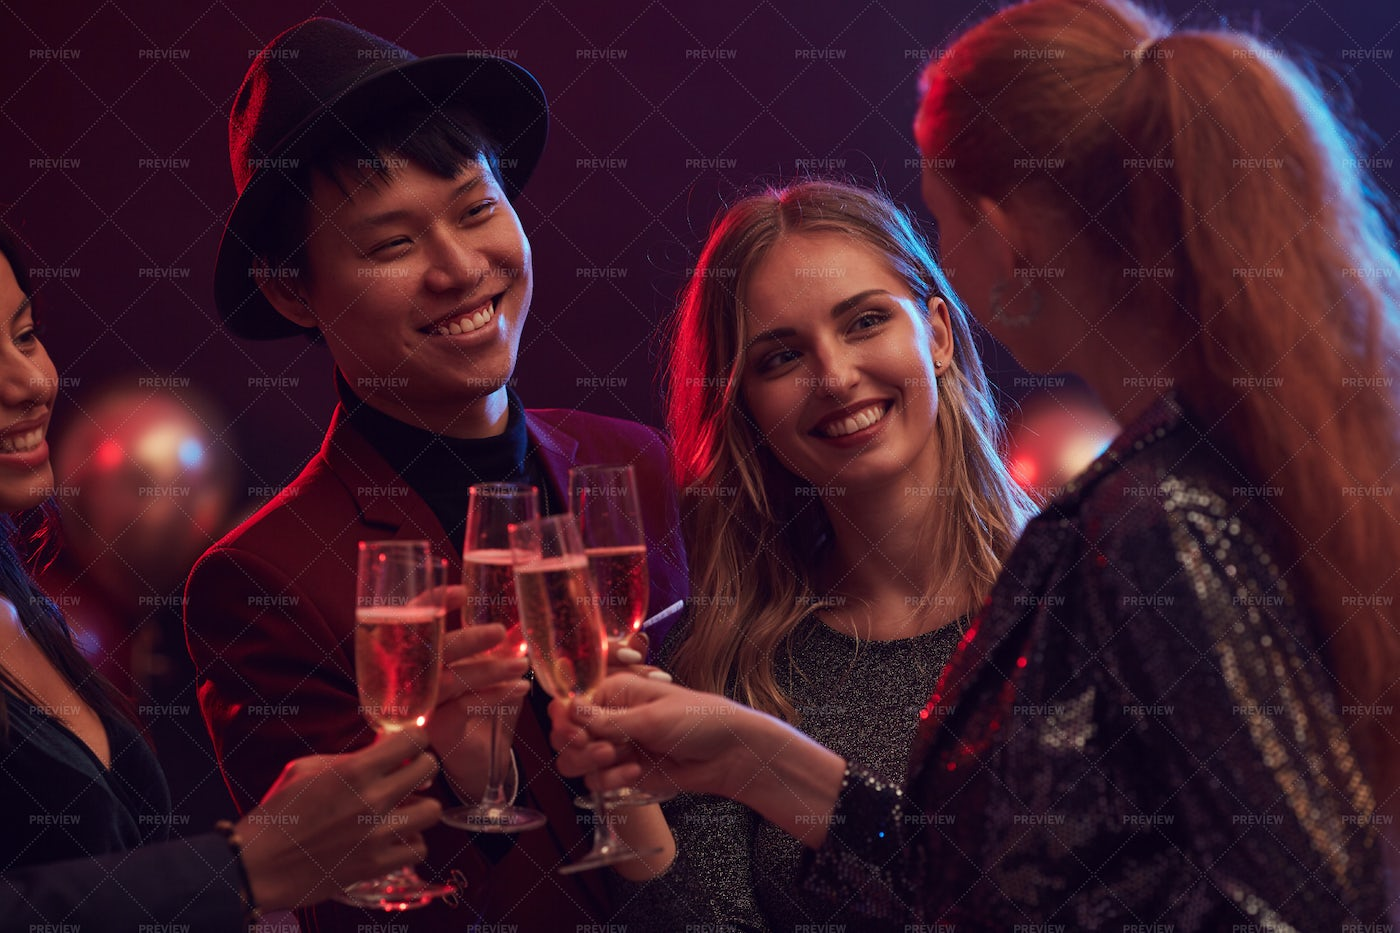 Young People Partying In Nightclub: Stock Photos